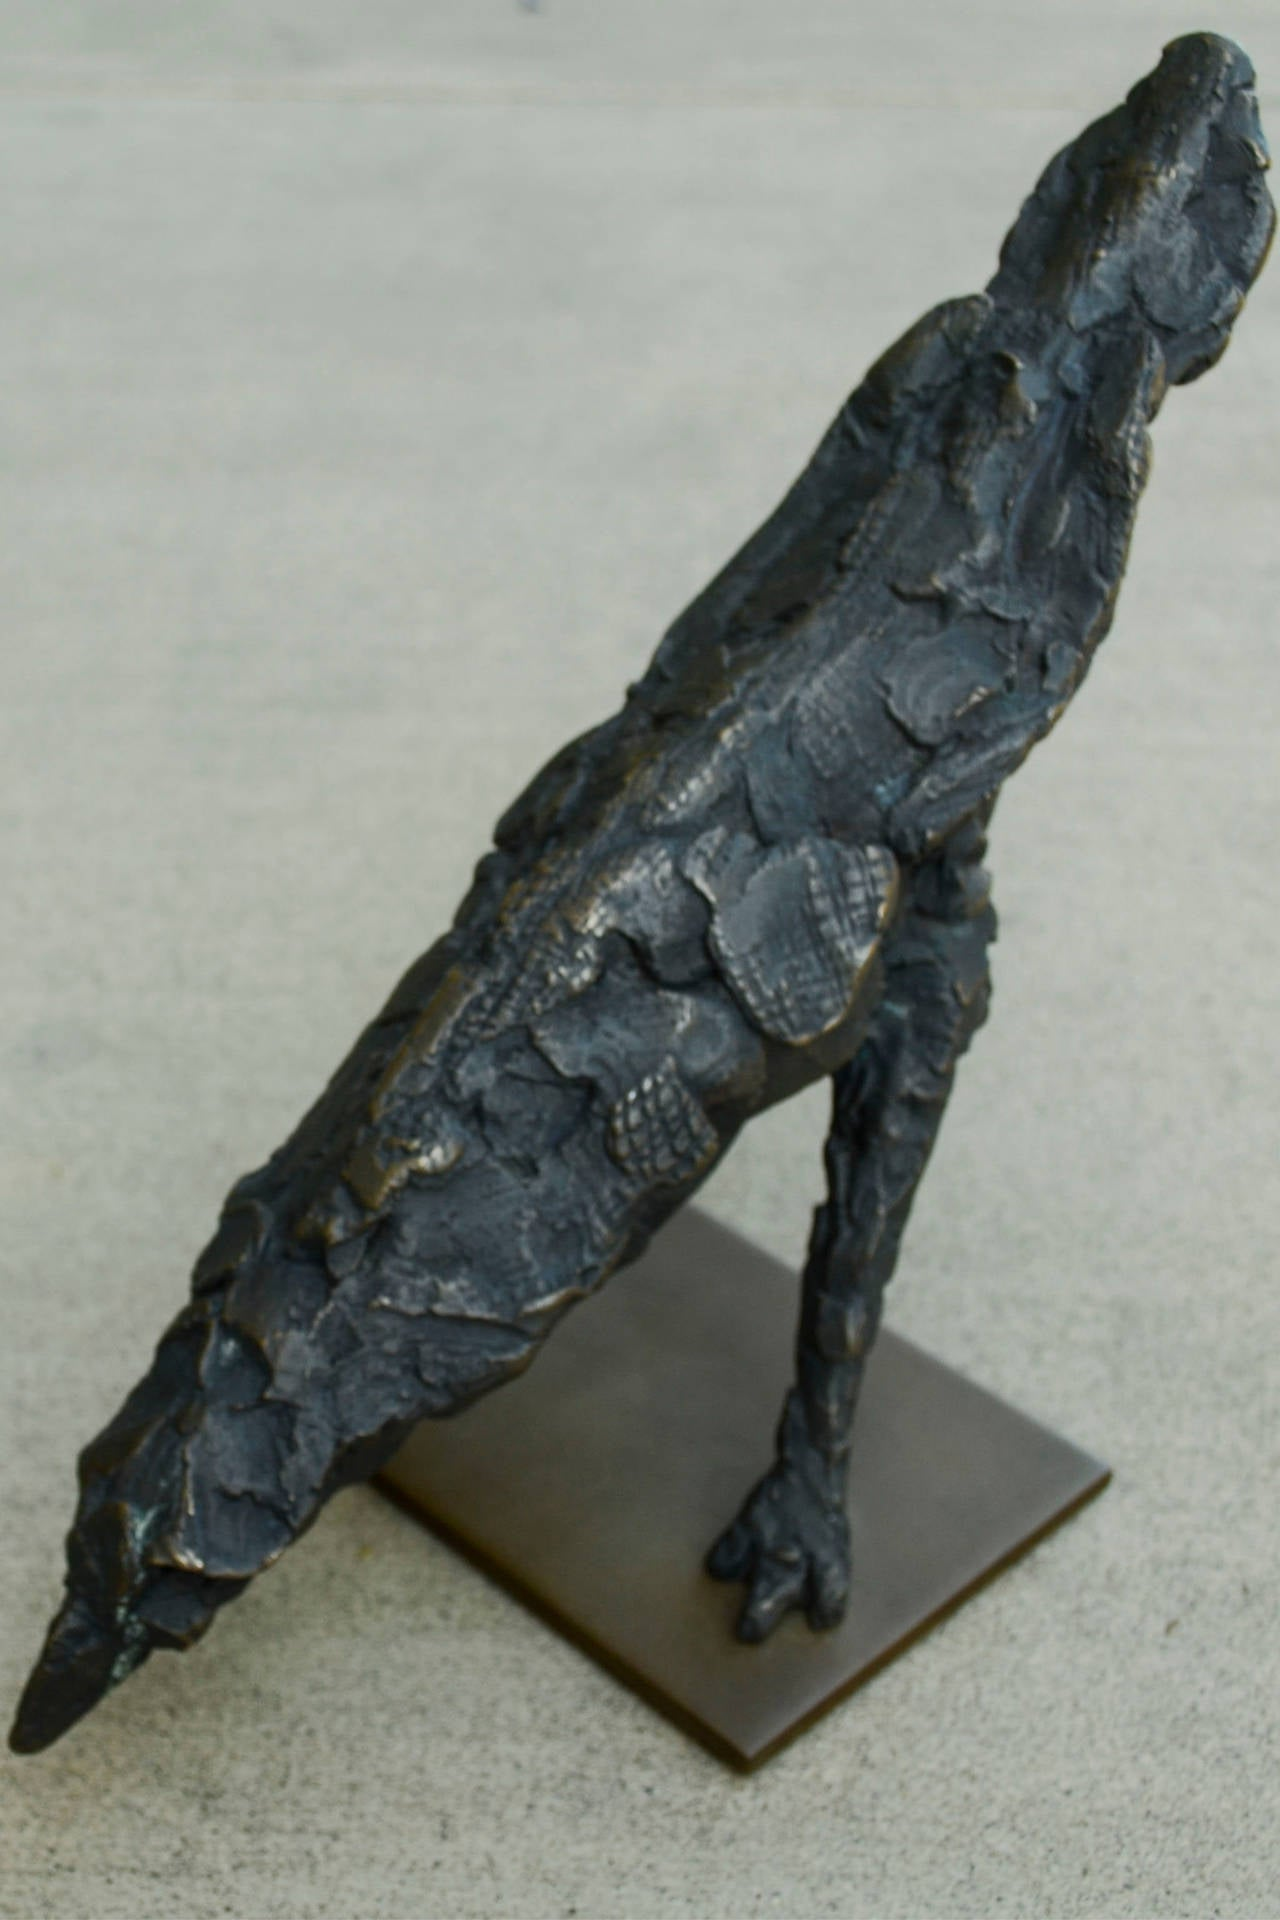 Cast bronze, Edition of 12  Named for the Roman god of agriculture; sixth planet from the sun; second largest planet.  Sharon Loper creates transitory sculptures out of bronze, stone, and wood and views her work as landscapes of thought based on